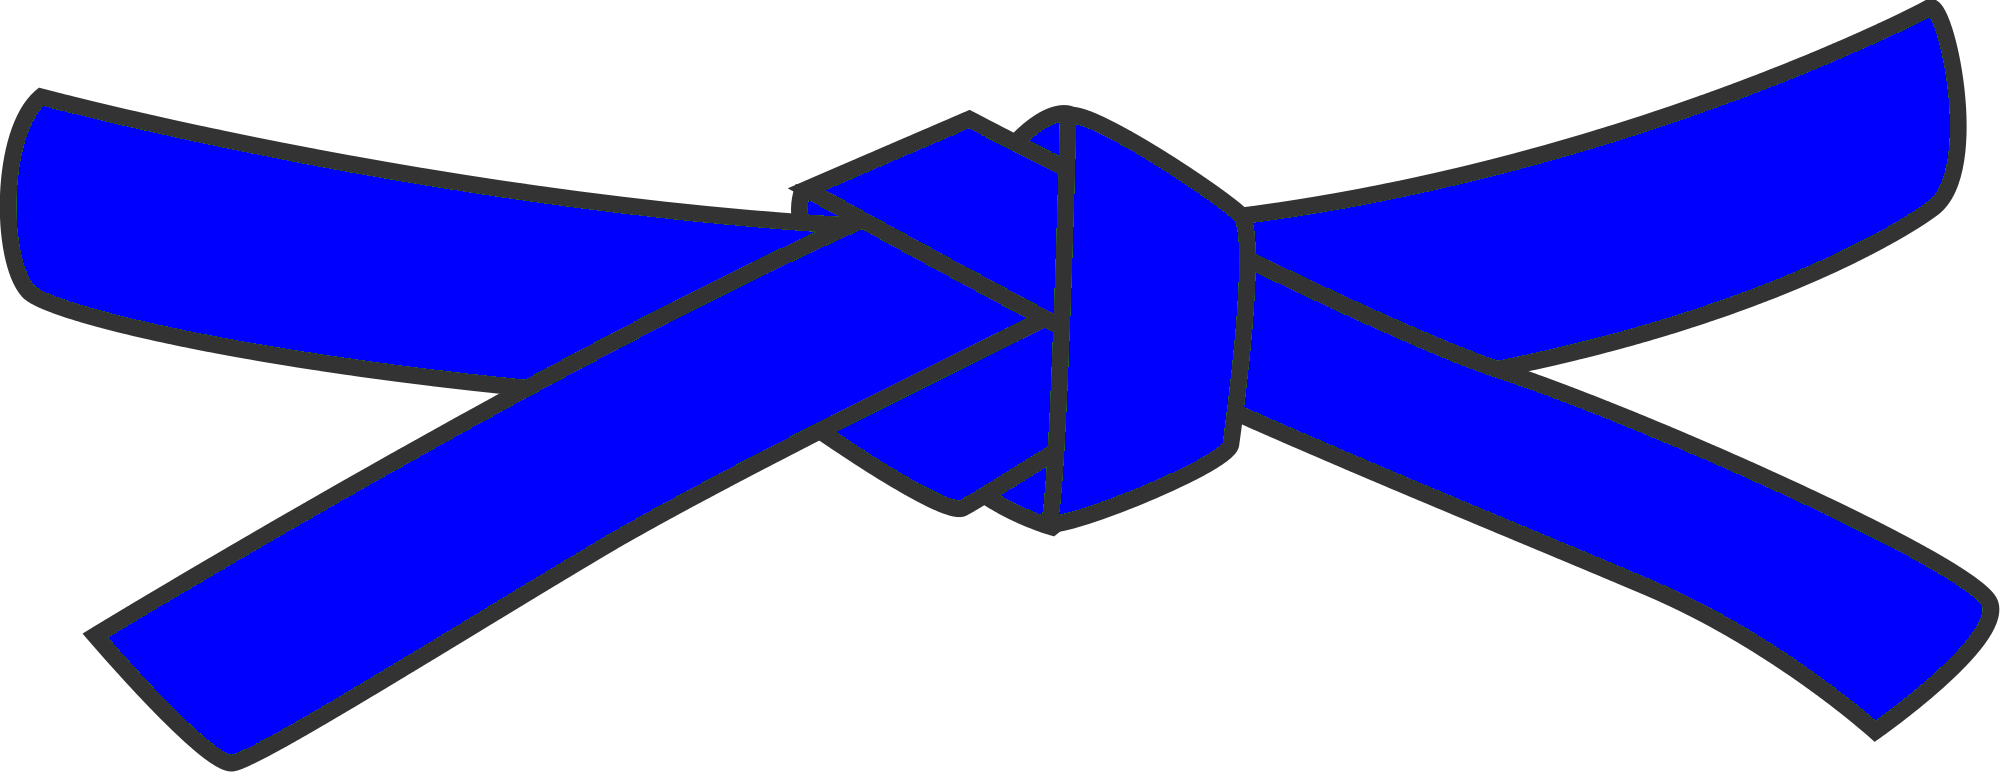 6th Kyu - Blue belt